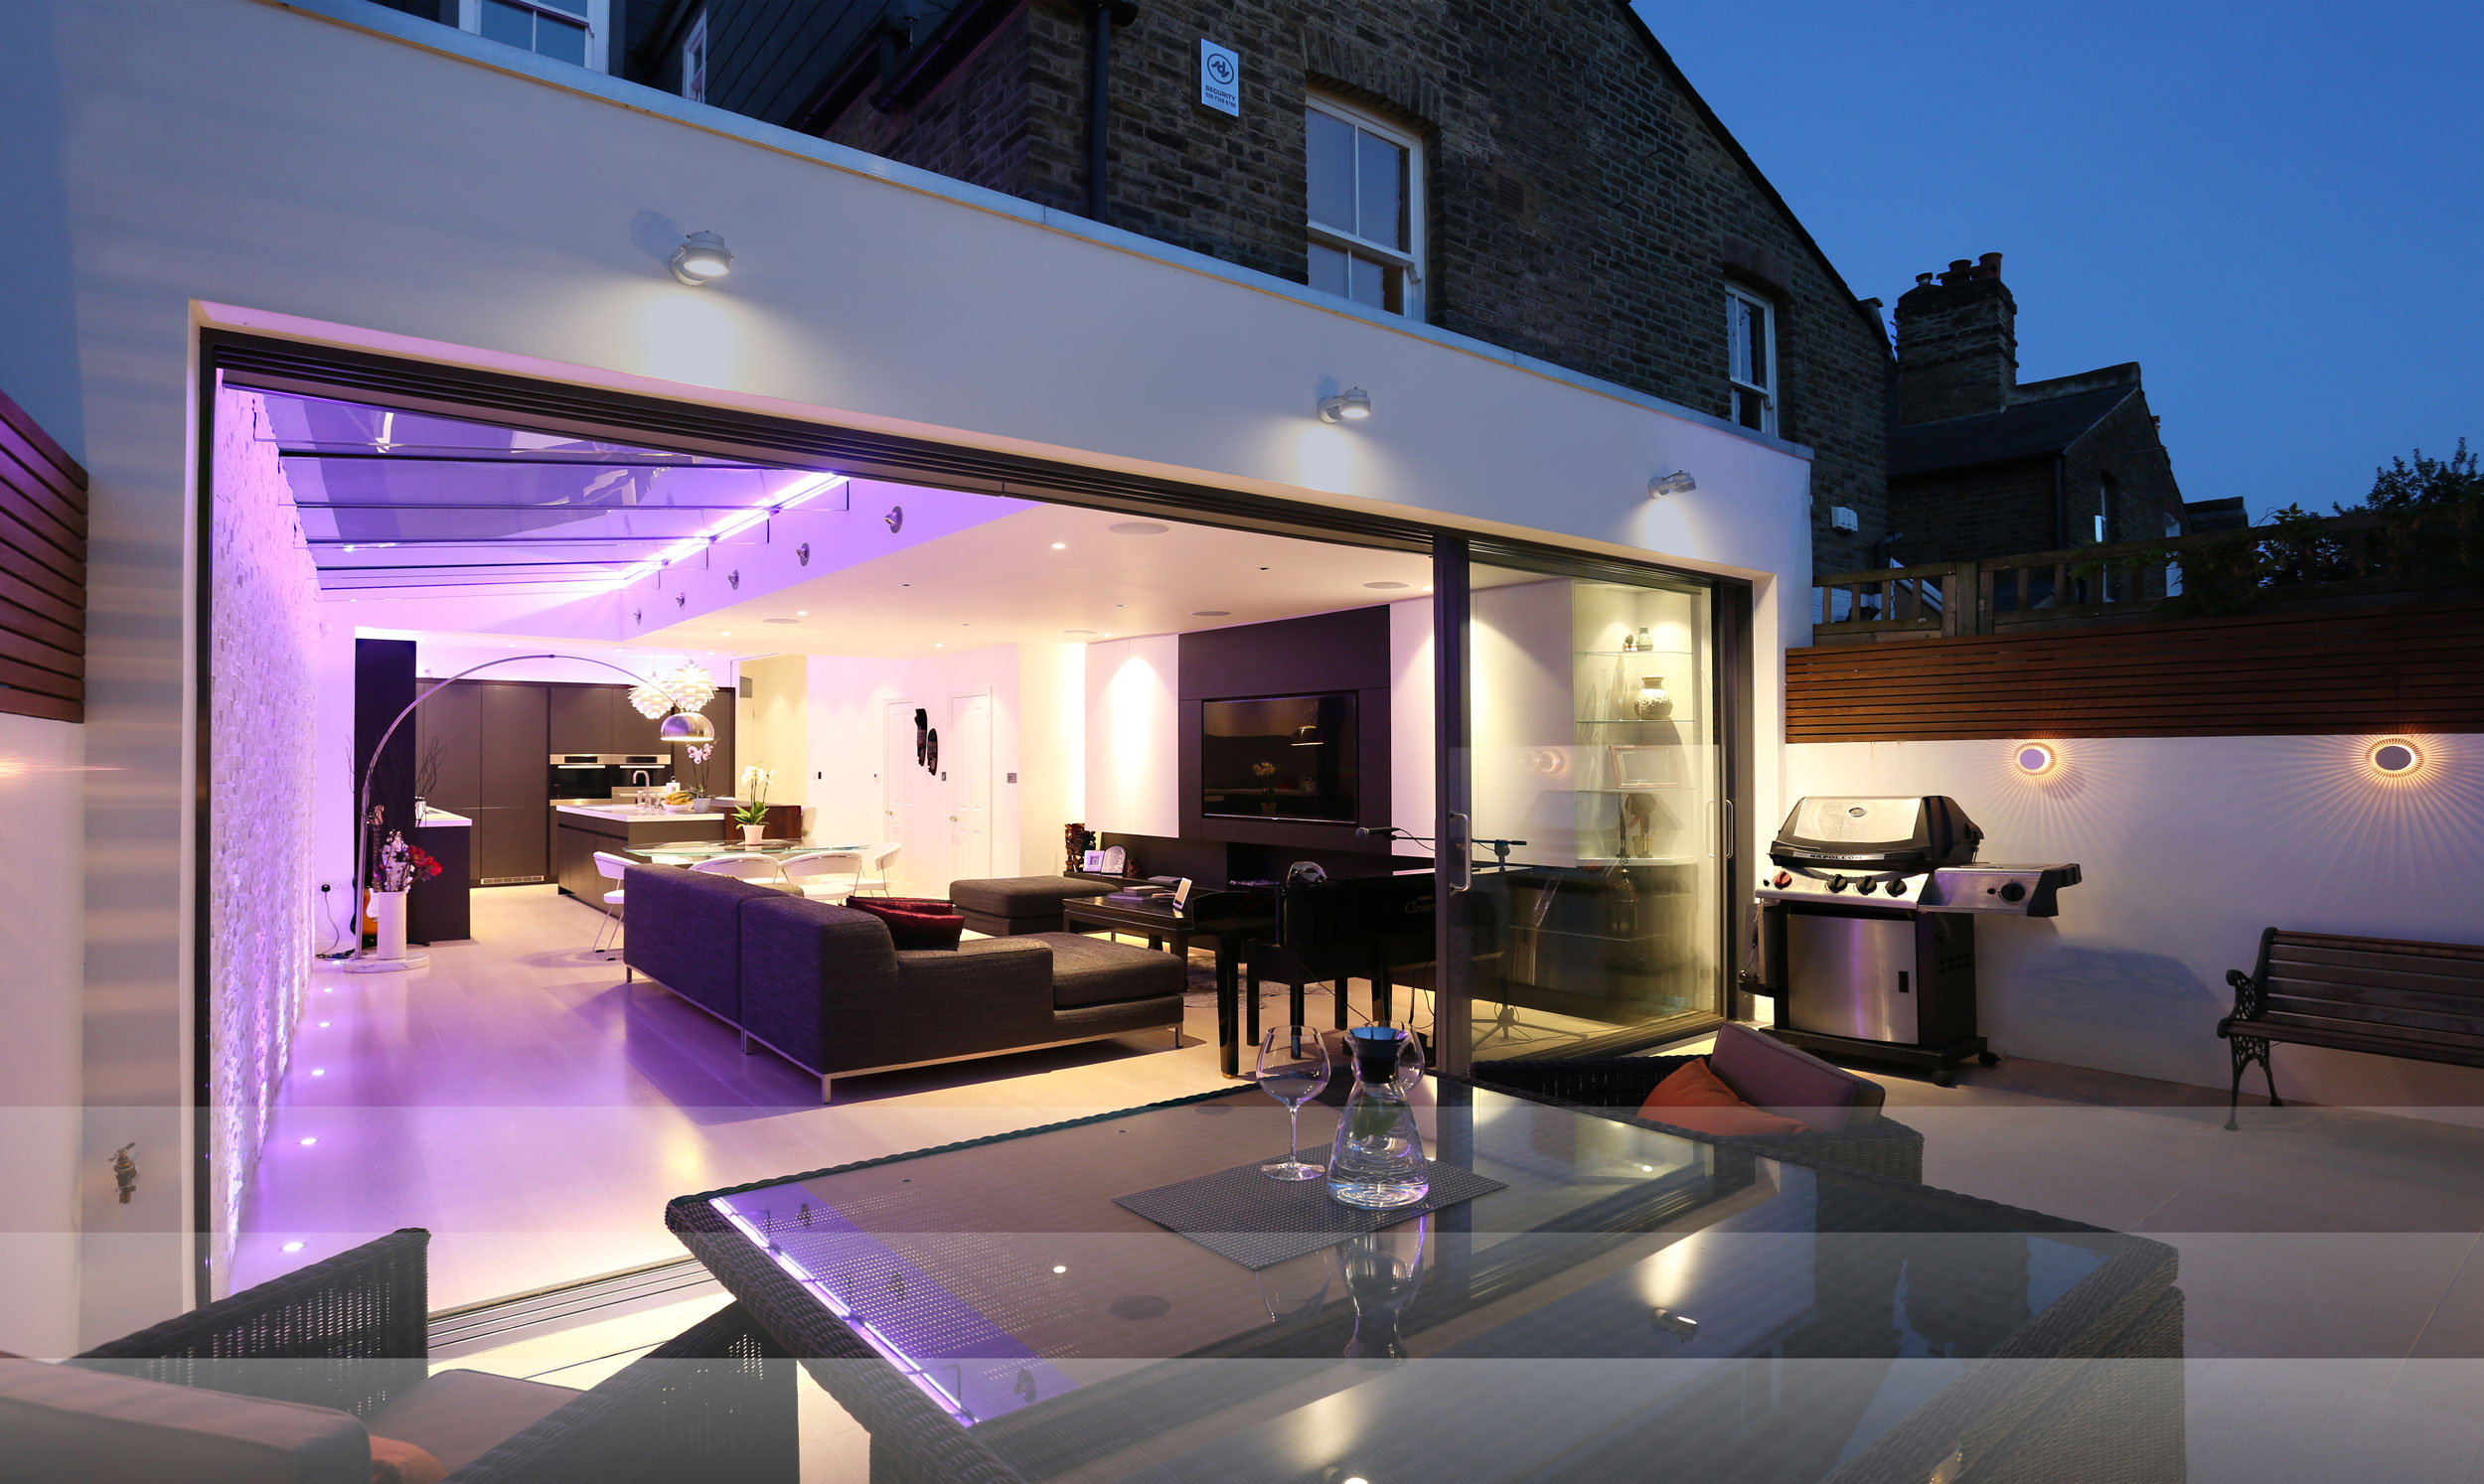 plus rooms - kitchen extensions london IOYJJSA